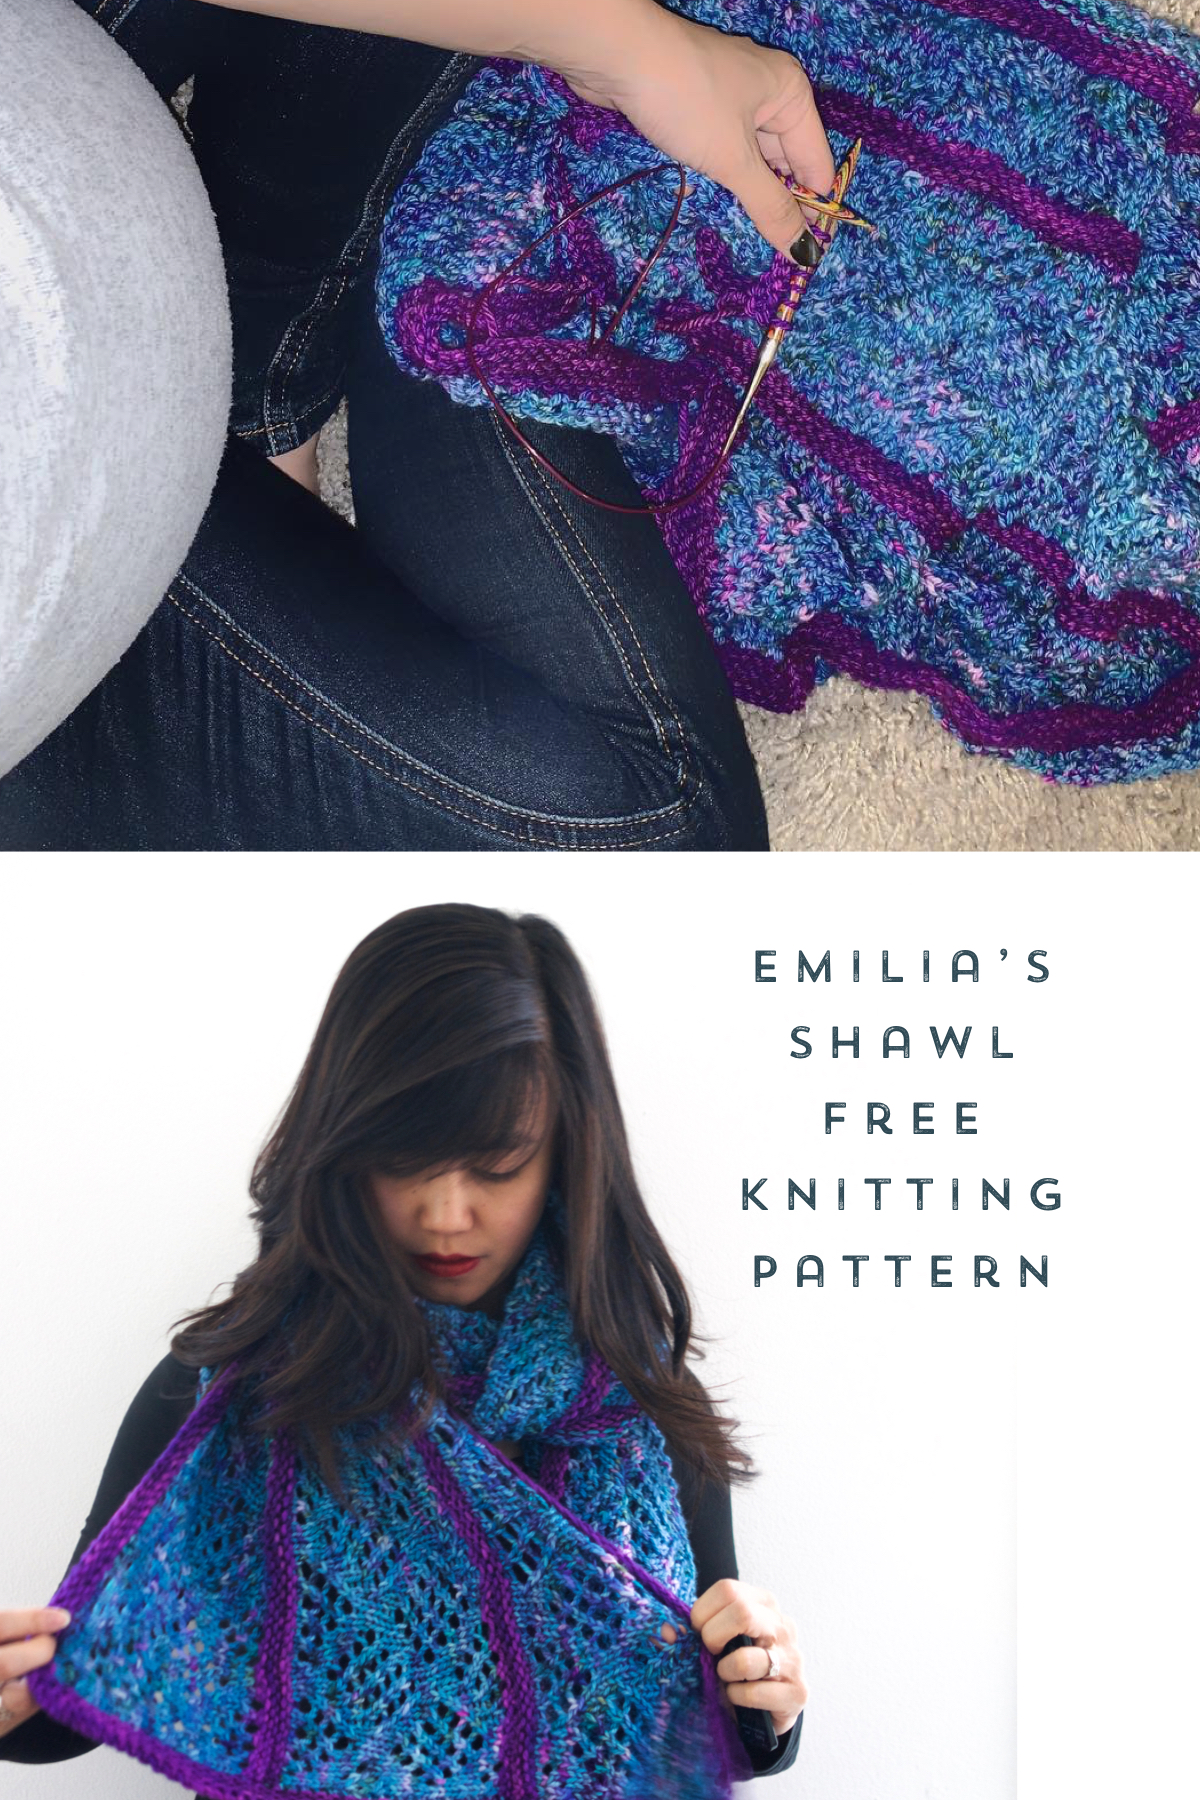 Emilia_Shawl_Free_Knitting_Pattern_1.jpg